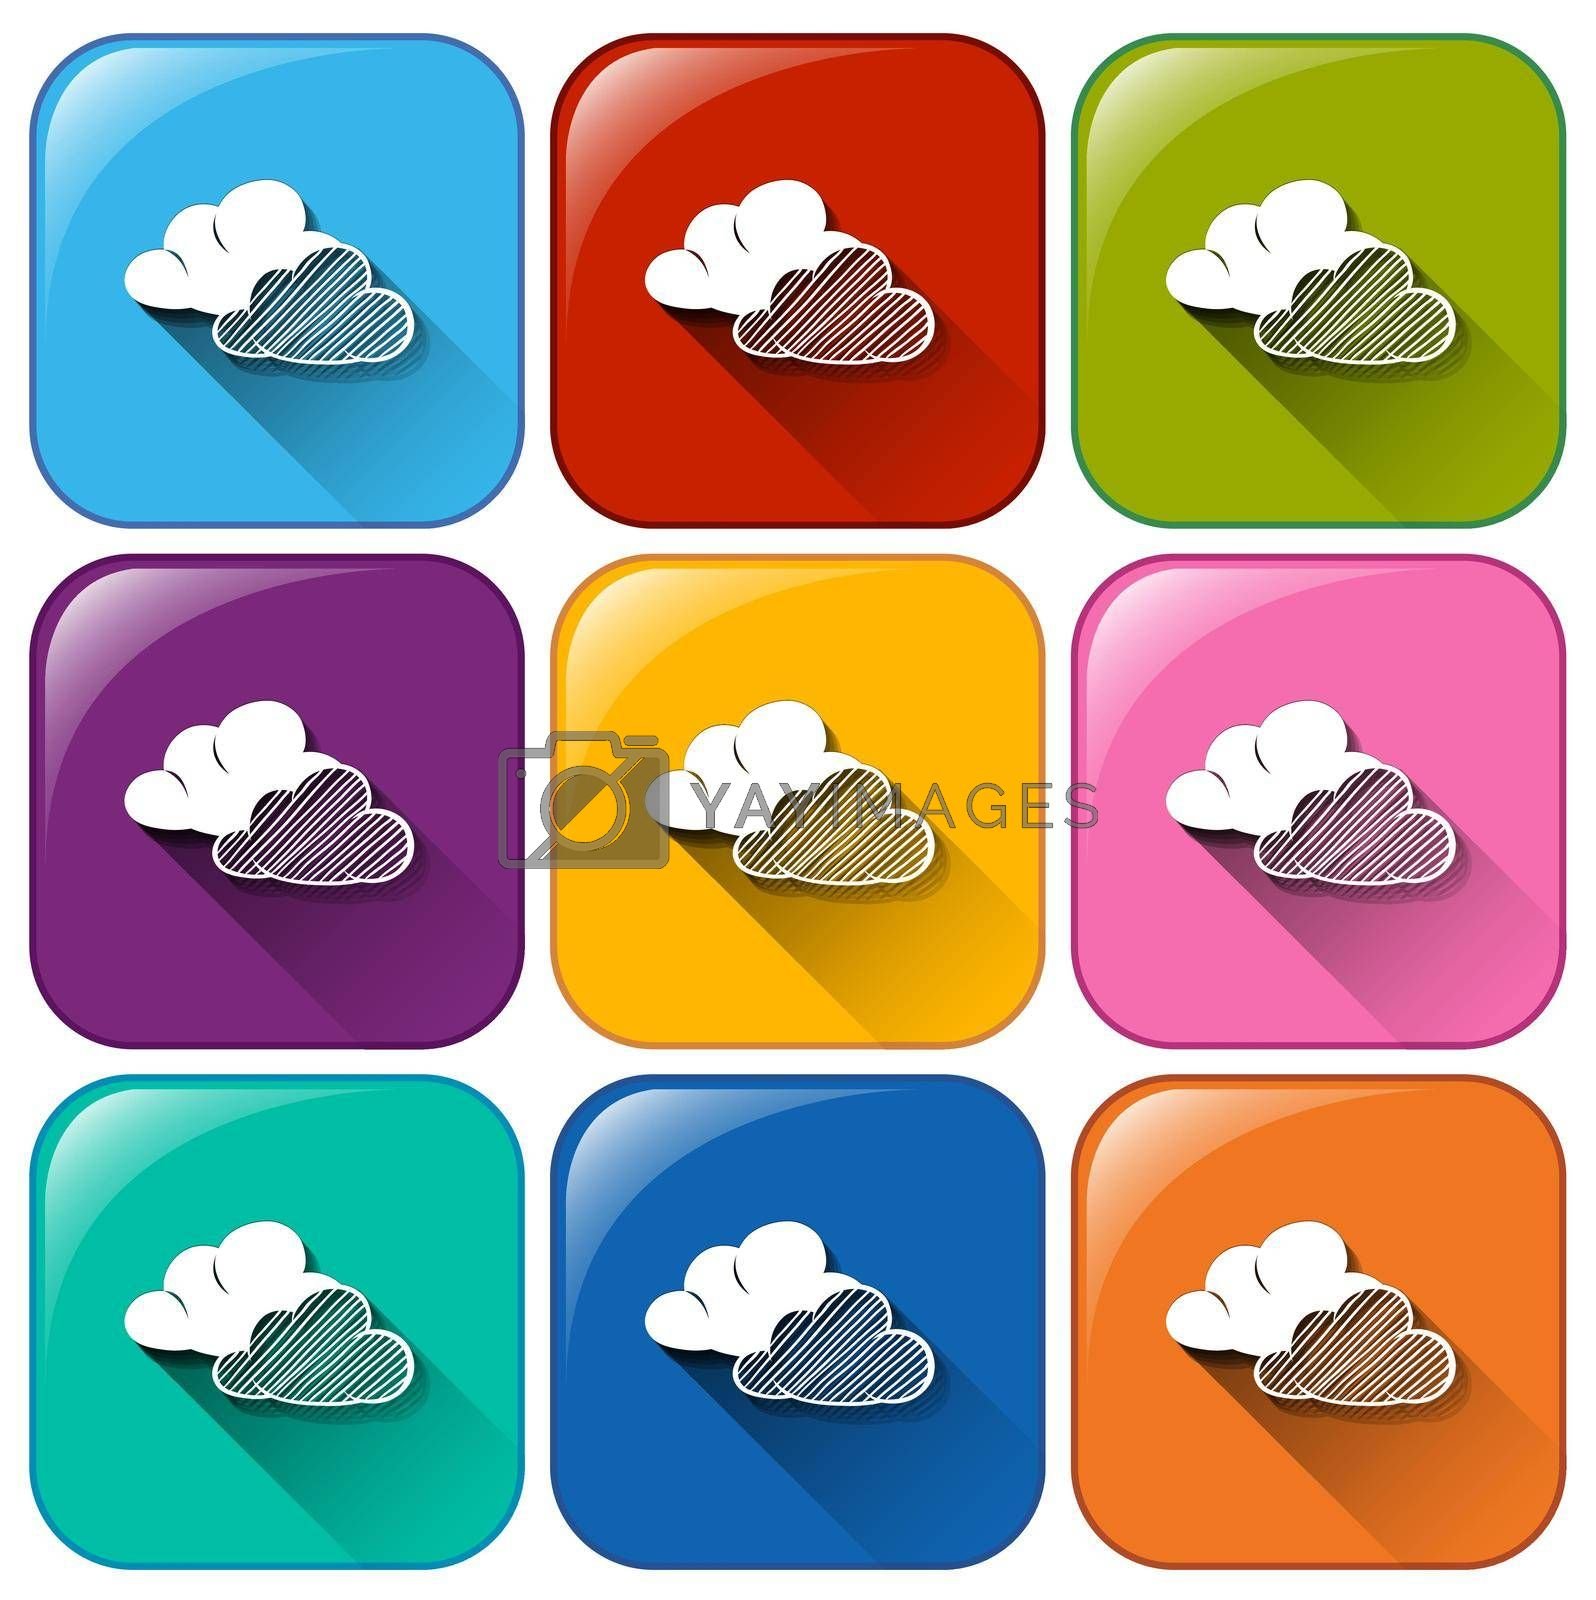 Royalty free image of Weather forecast buttons by iimages